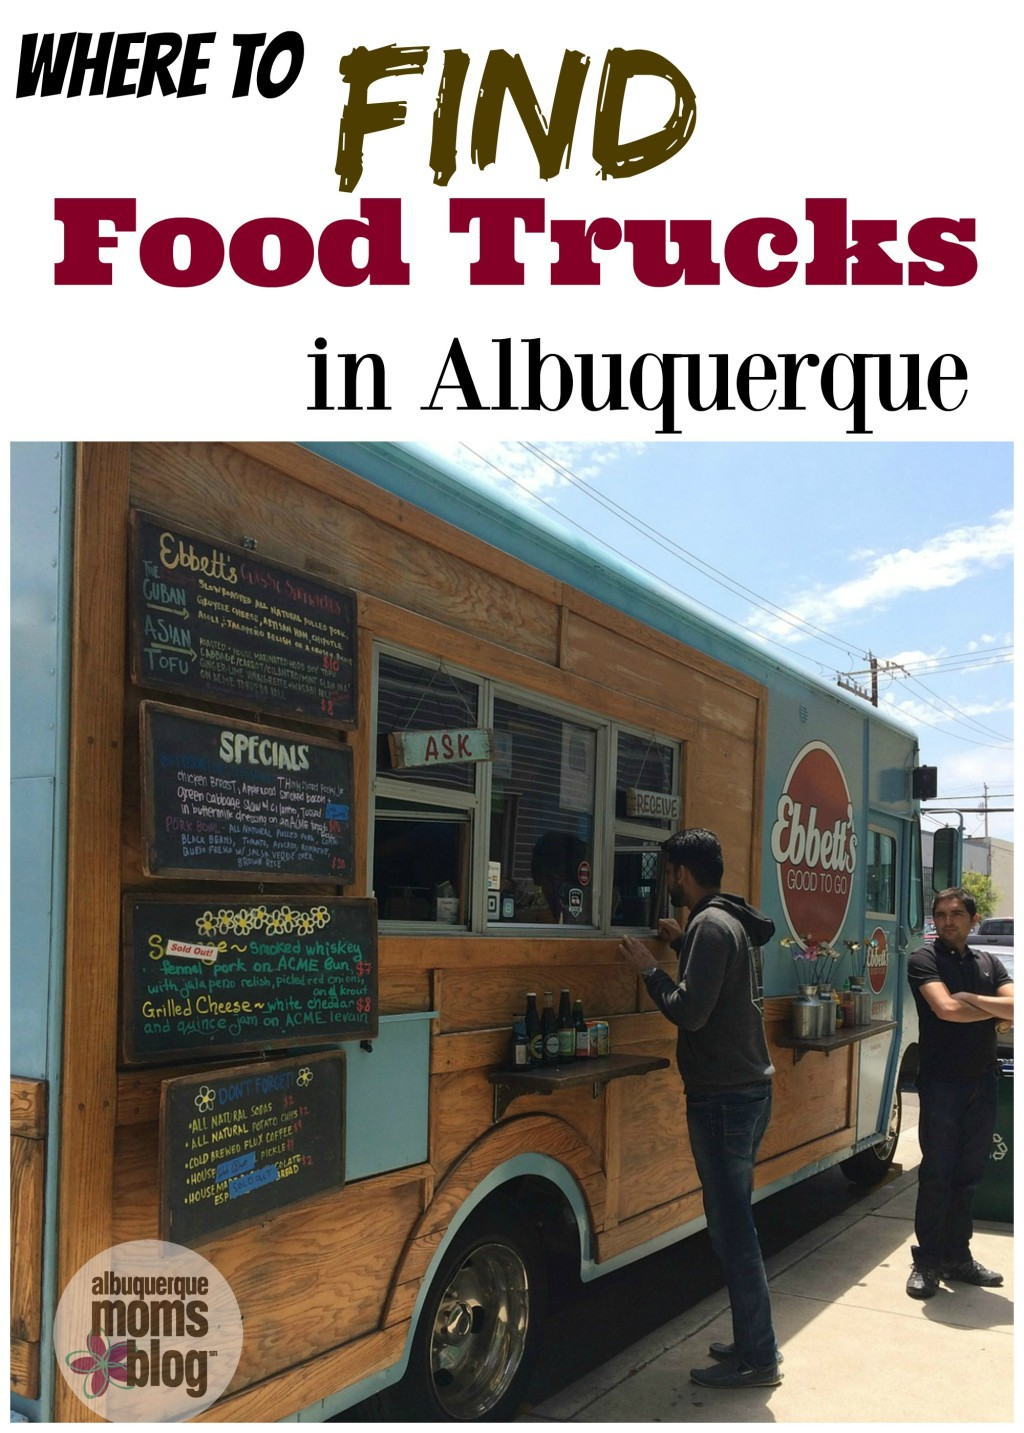 Where to Find Food Trucks in Albuquerque from Albuquerque Mom's Blog